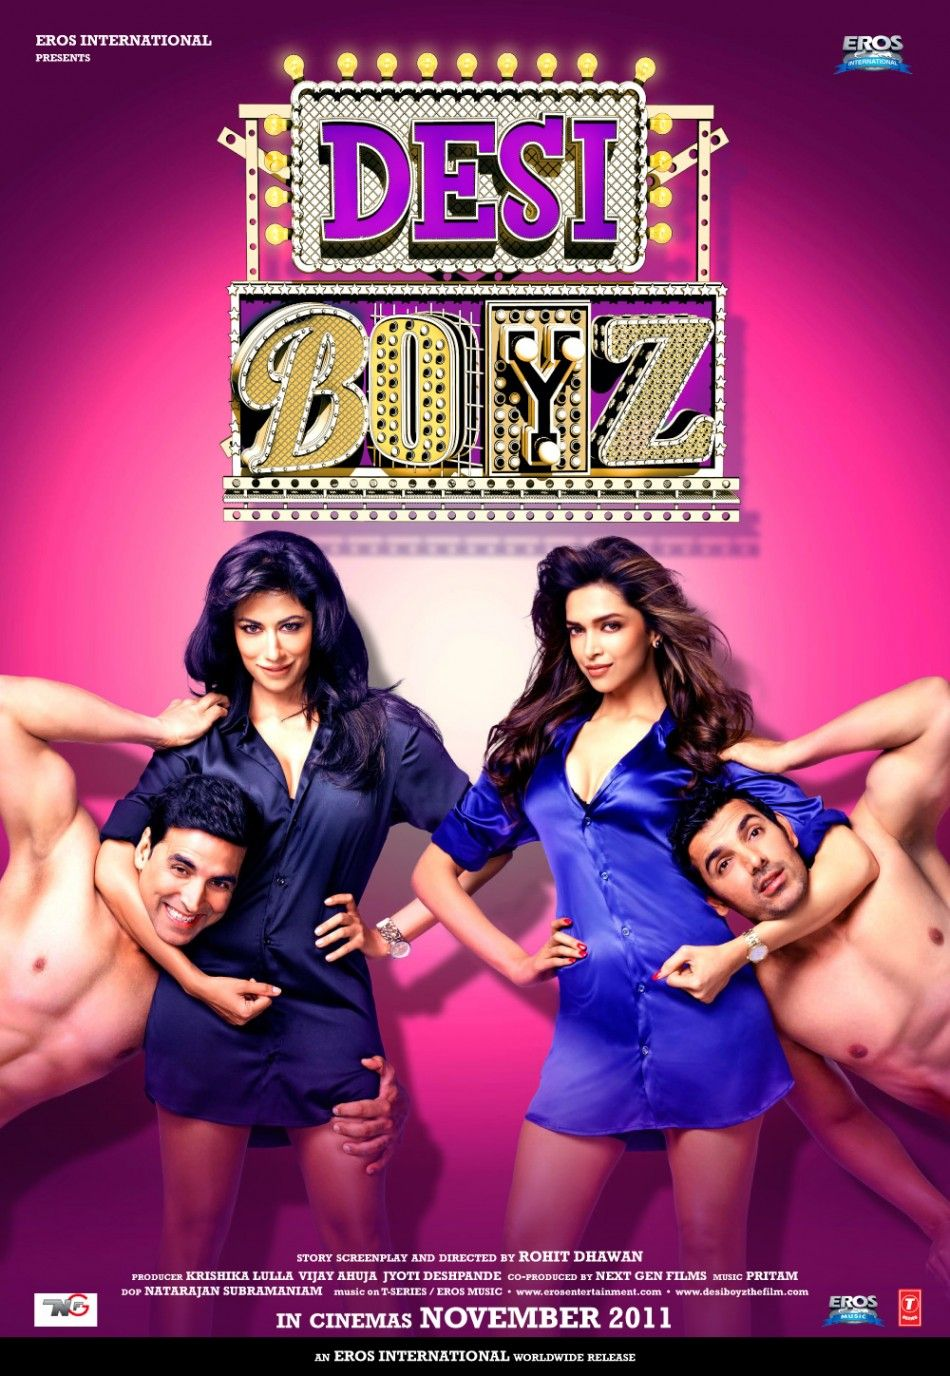 Desi Boyz Desi boyz, Hindi movies, Hindi movies online